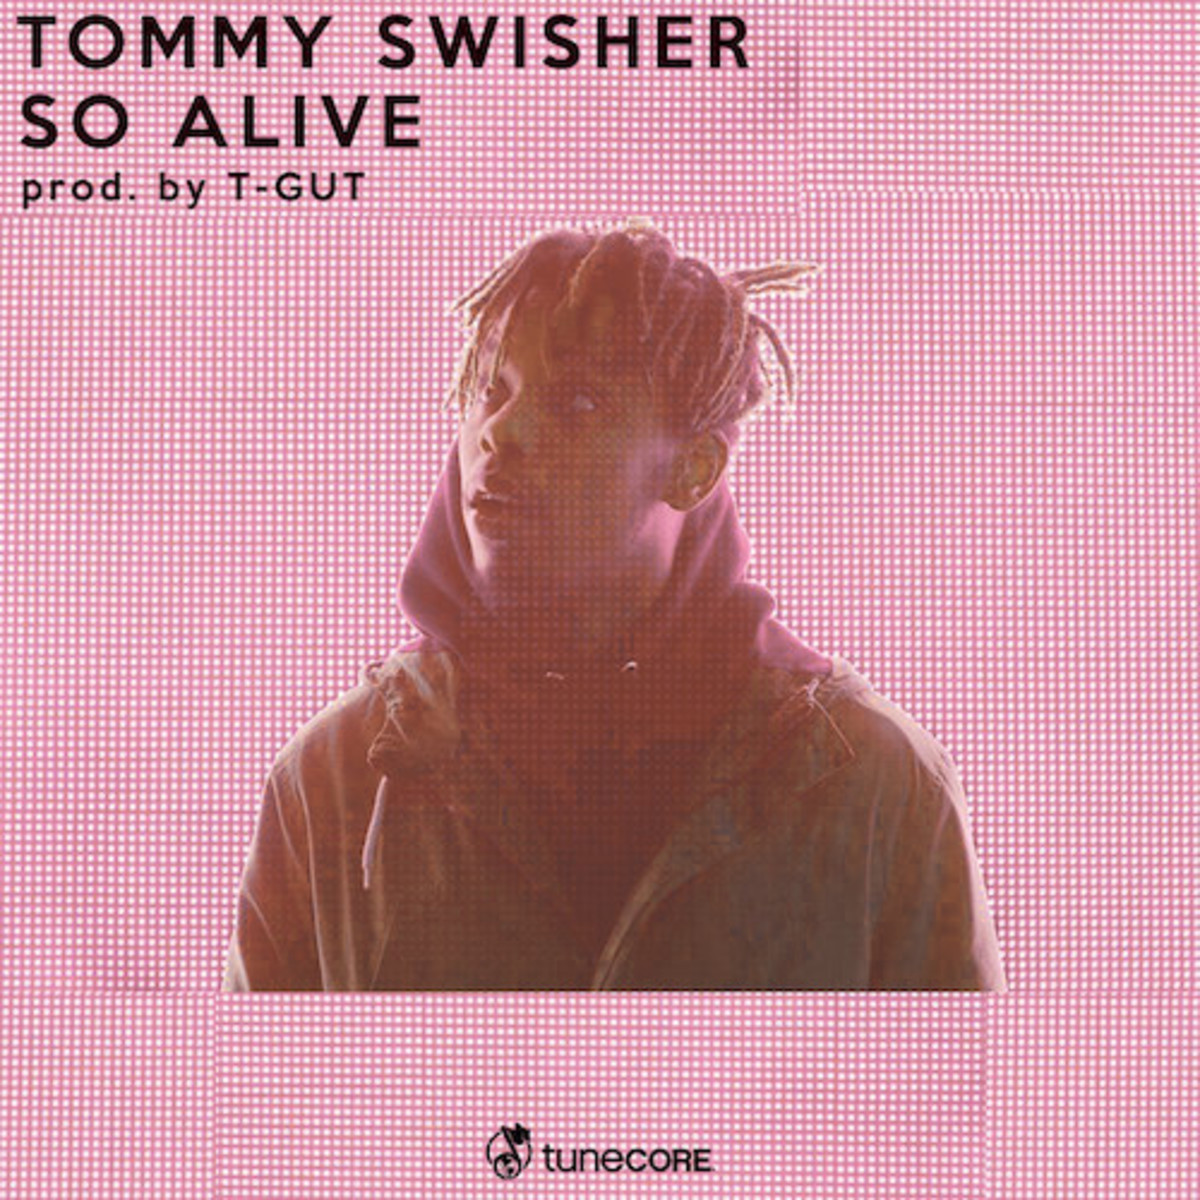 tommy-swisher-so-alive.jpg